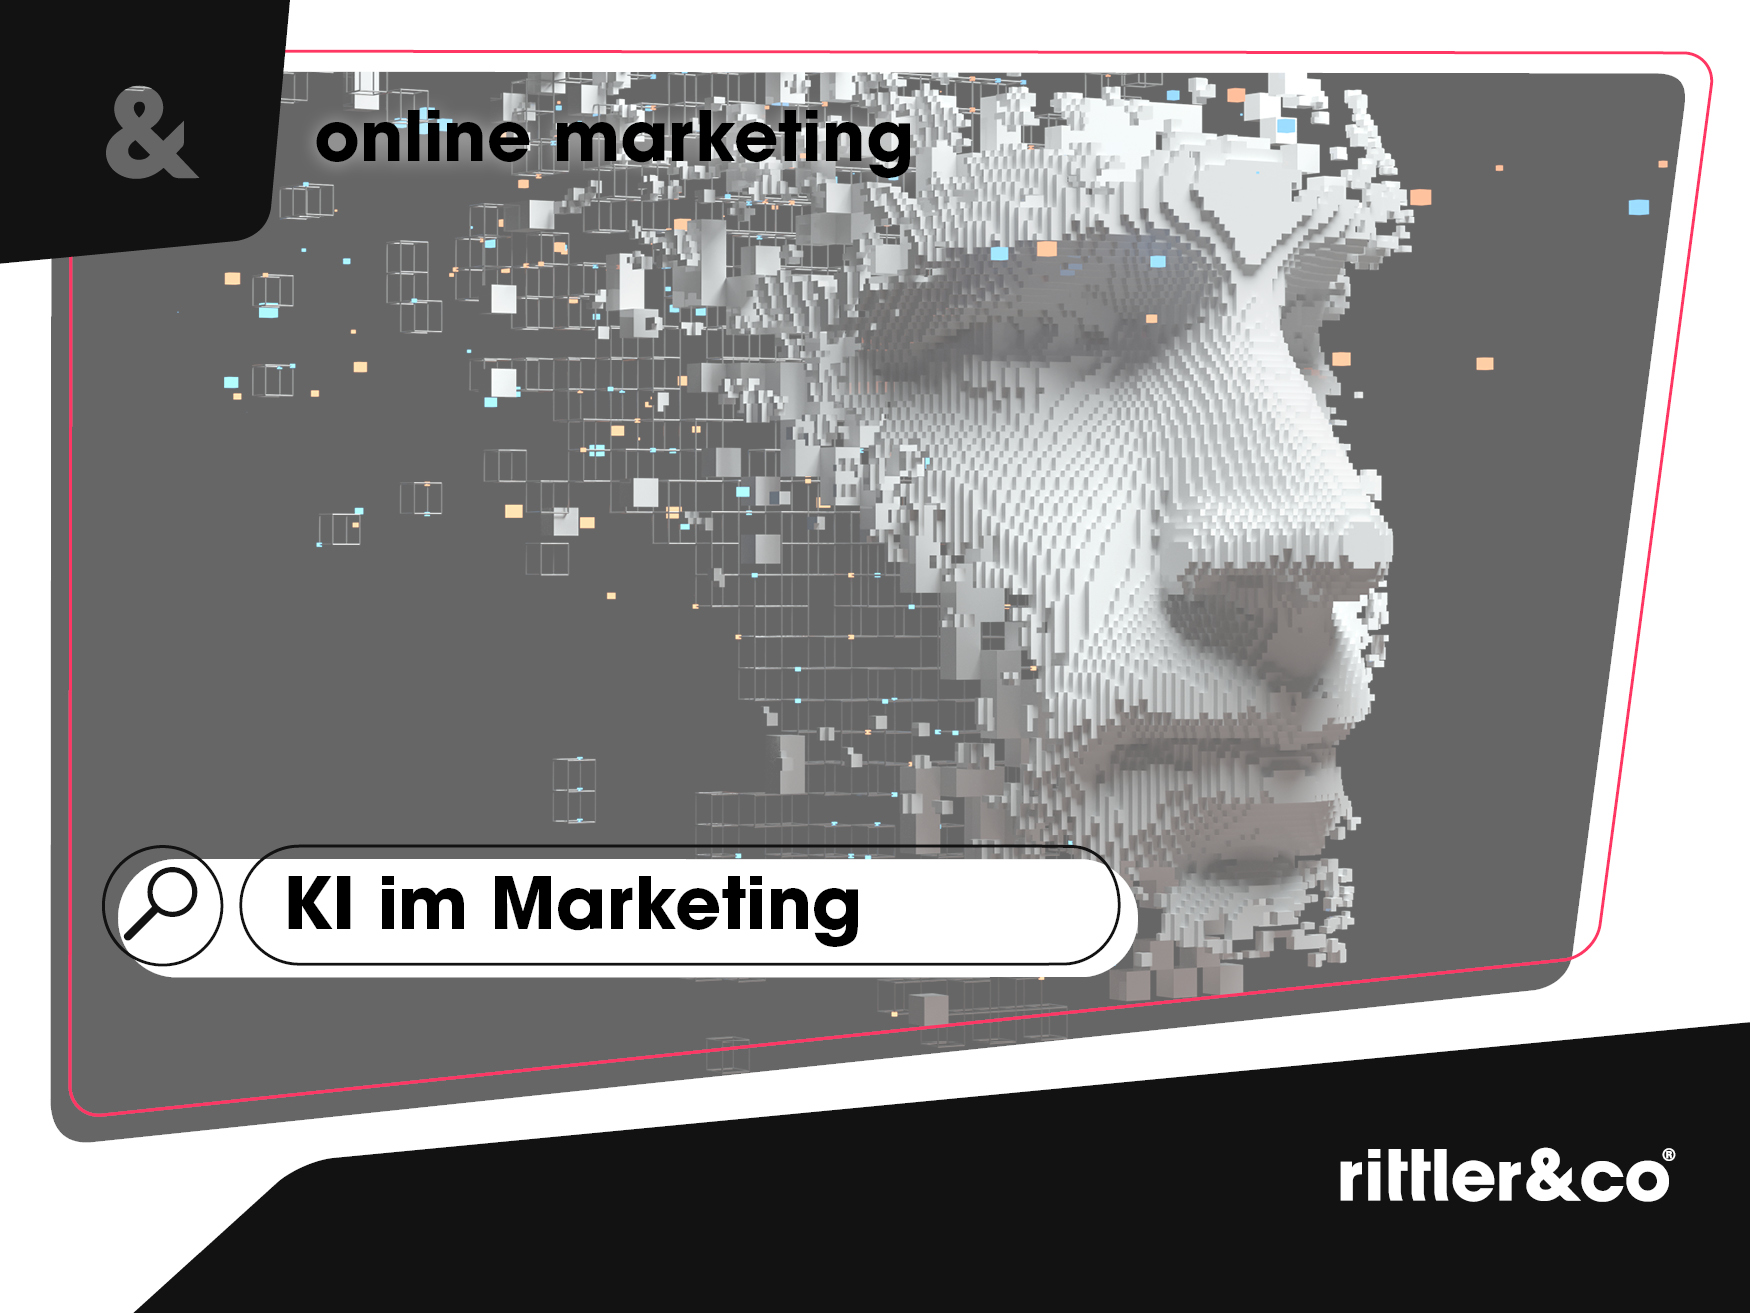 ki_im_marketing